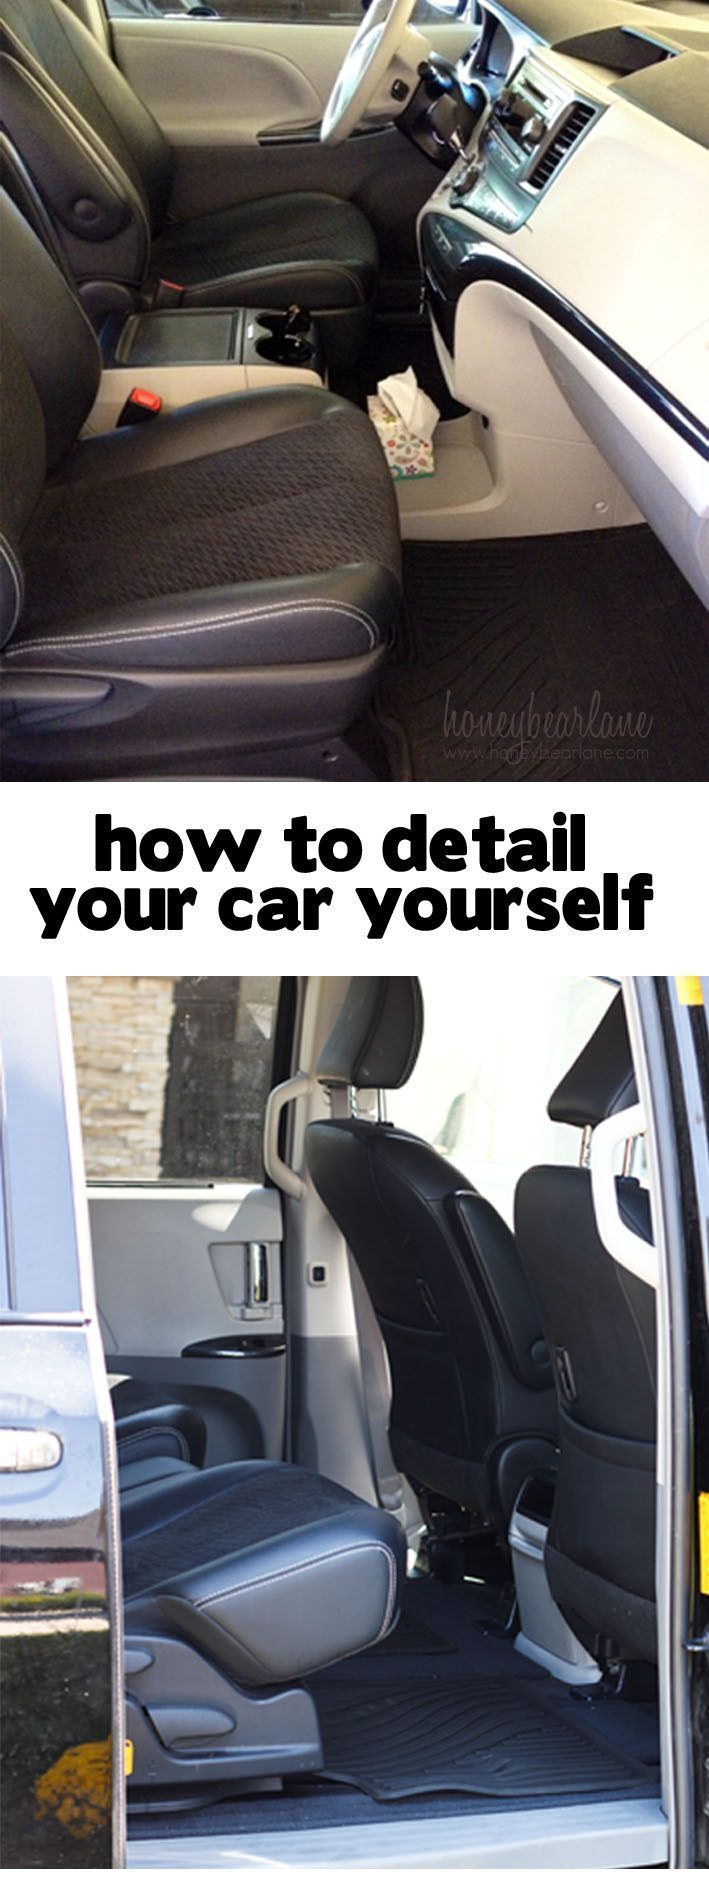 Car interior detailing - How To Detail Your Car Yourself